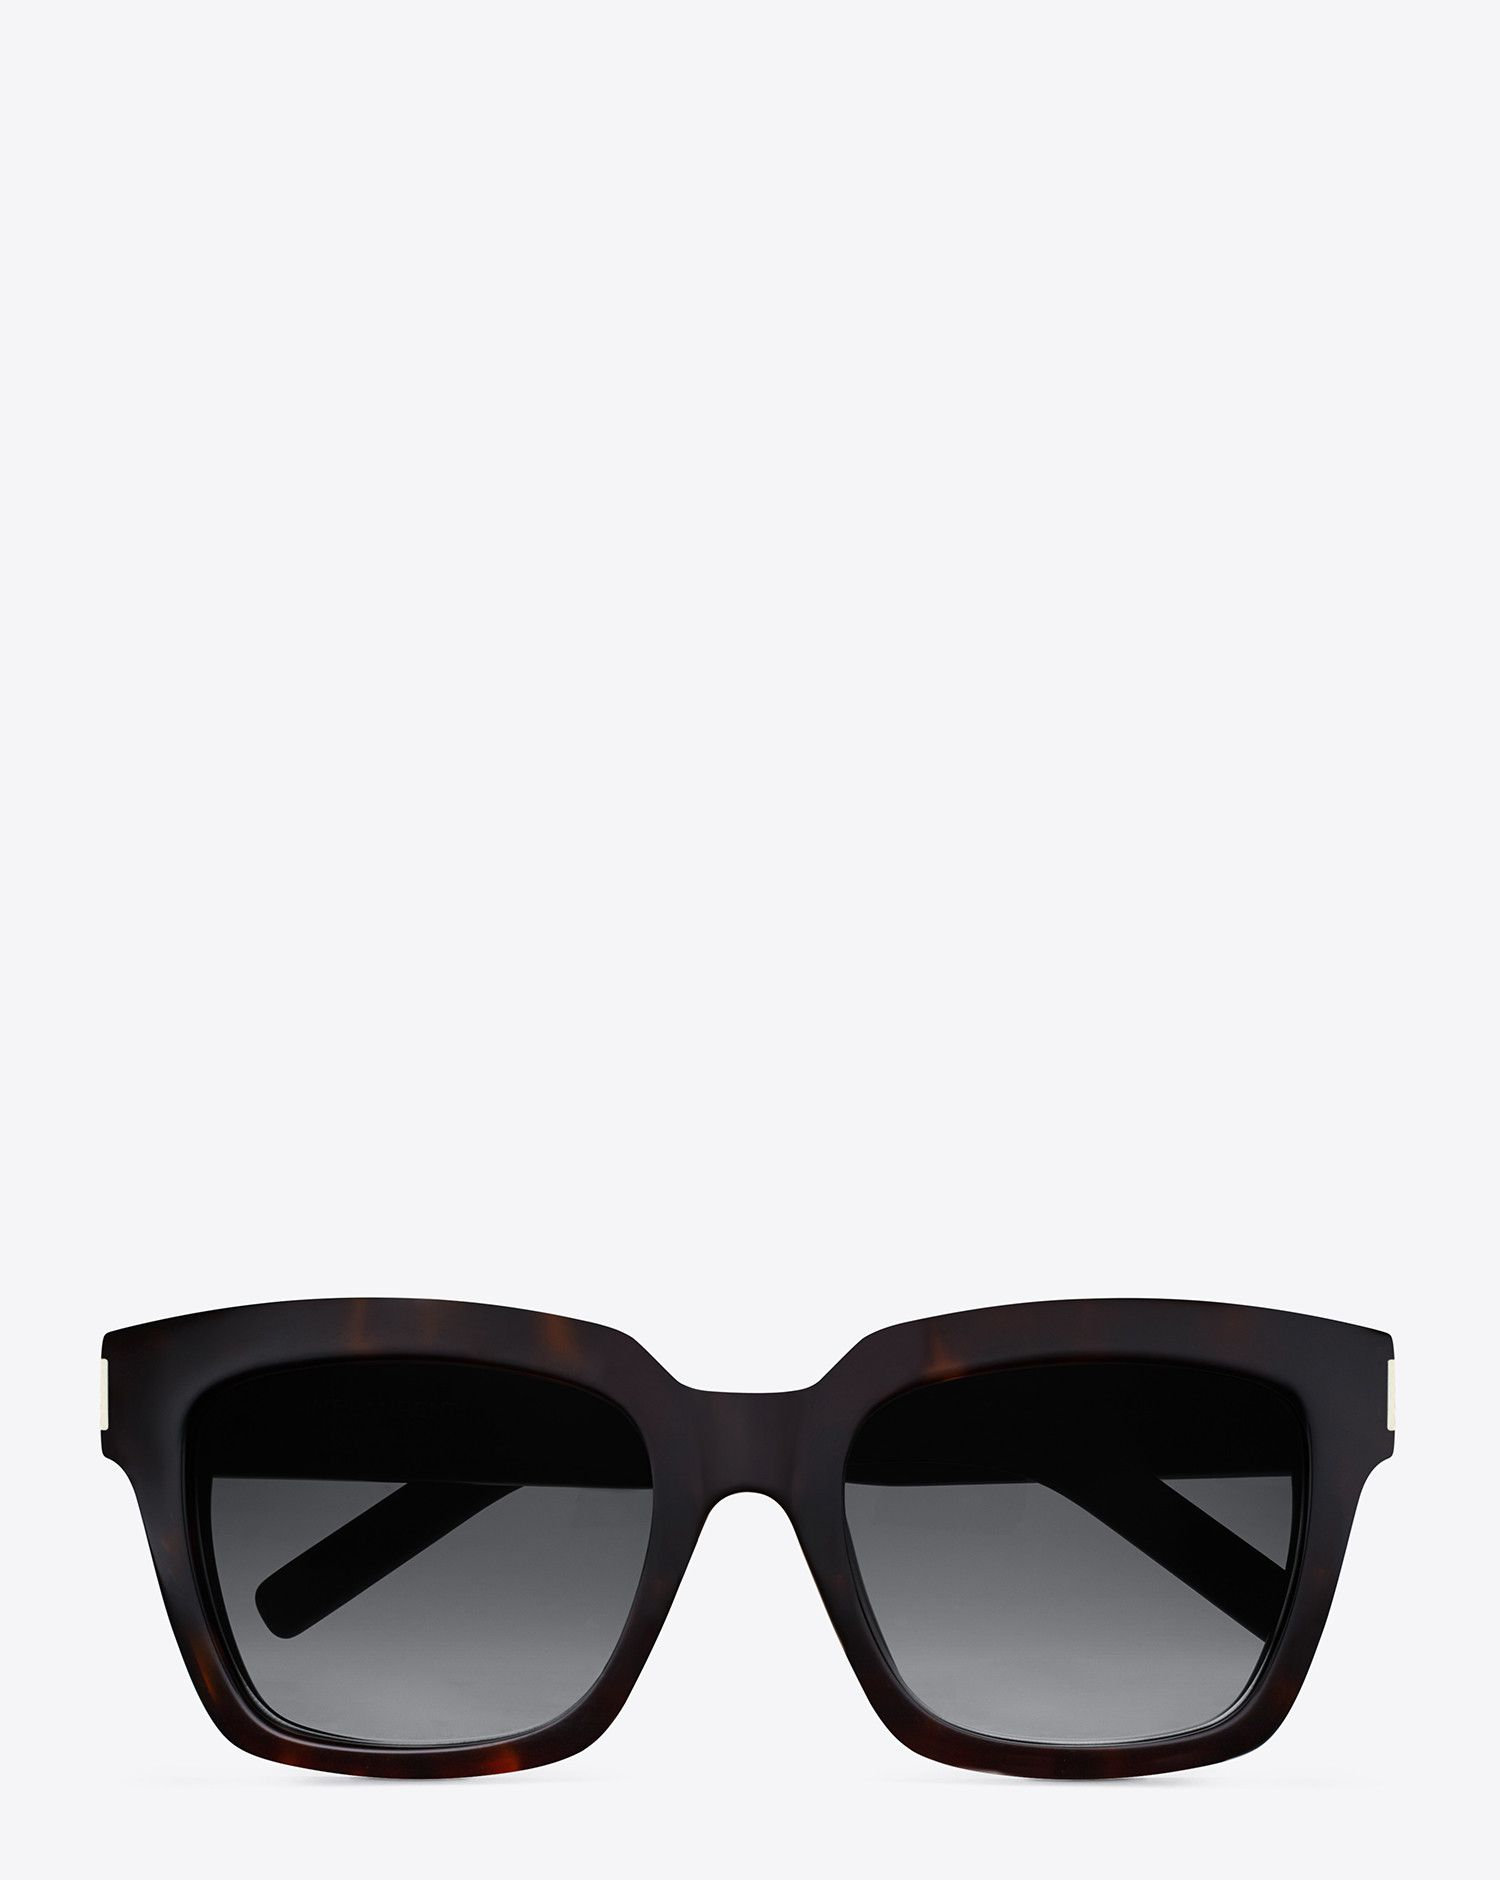 ce0d07f0ee5 Saint Laurent BOLD 1 SUNGLASSES IN Dark Havana ACETATE WITH GREY Shaded  LENSES